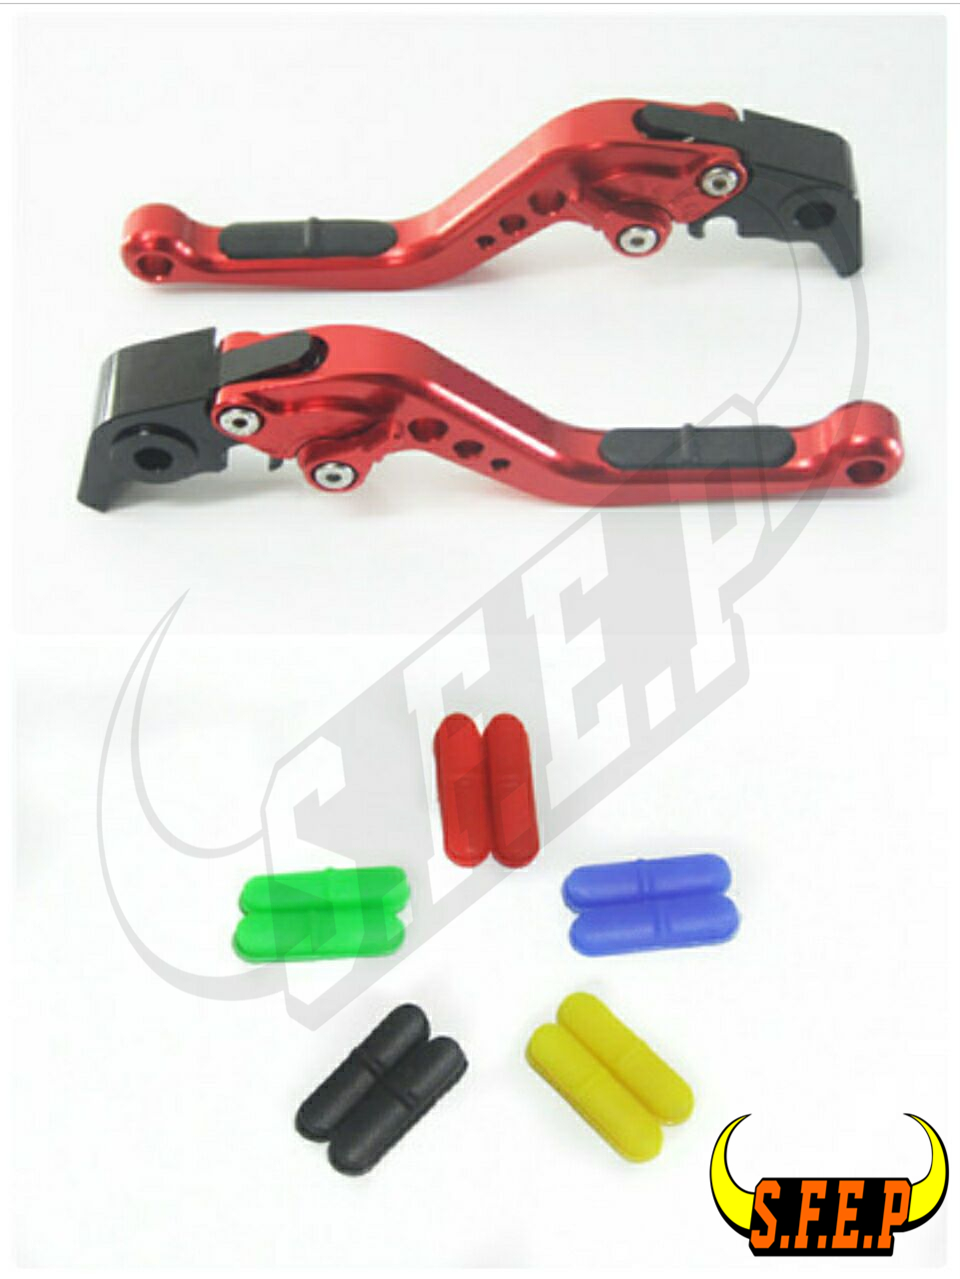 CNC Adjustable Motorcycle Brake and Clutch Levers with Anti-Slip For Honda GROM/MSX125 2014-2015-2016-2017-2018 cnc aluminum brake clutch levers set short adjustable motorcycle lever for honda grom msx125 2013 2015 cbt cbr300 400 cbt125